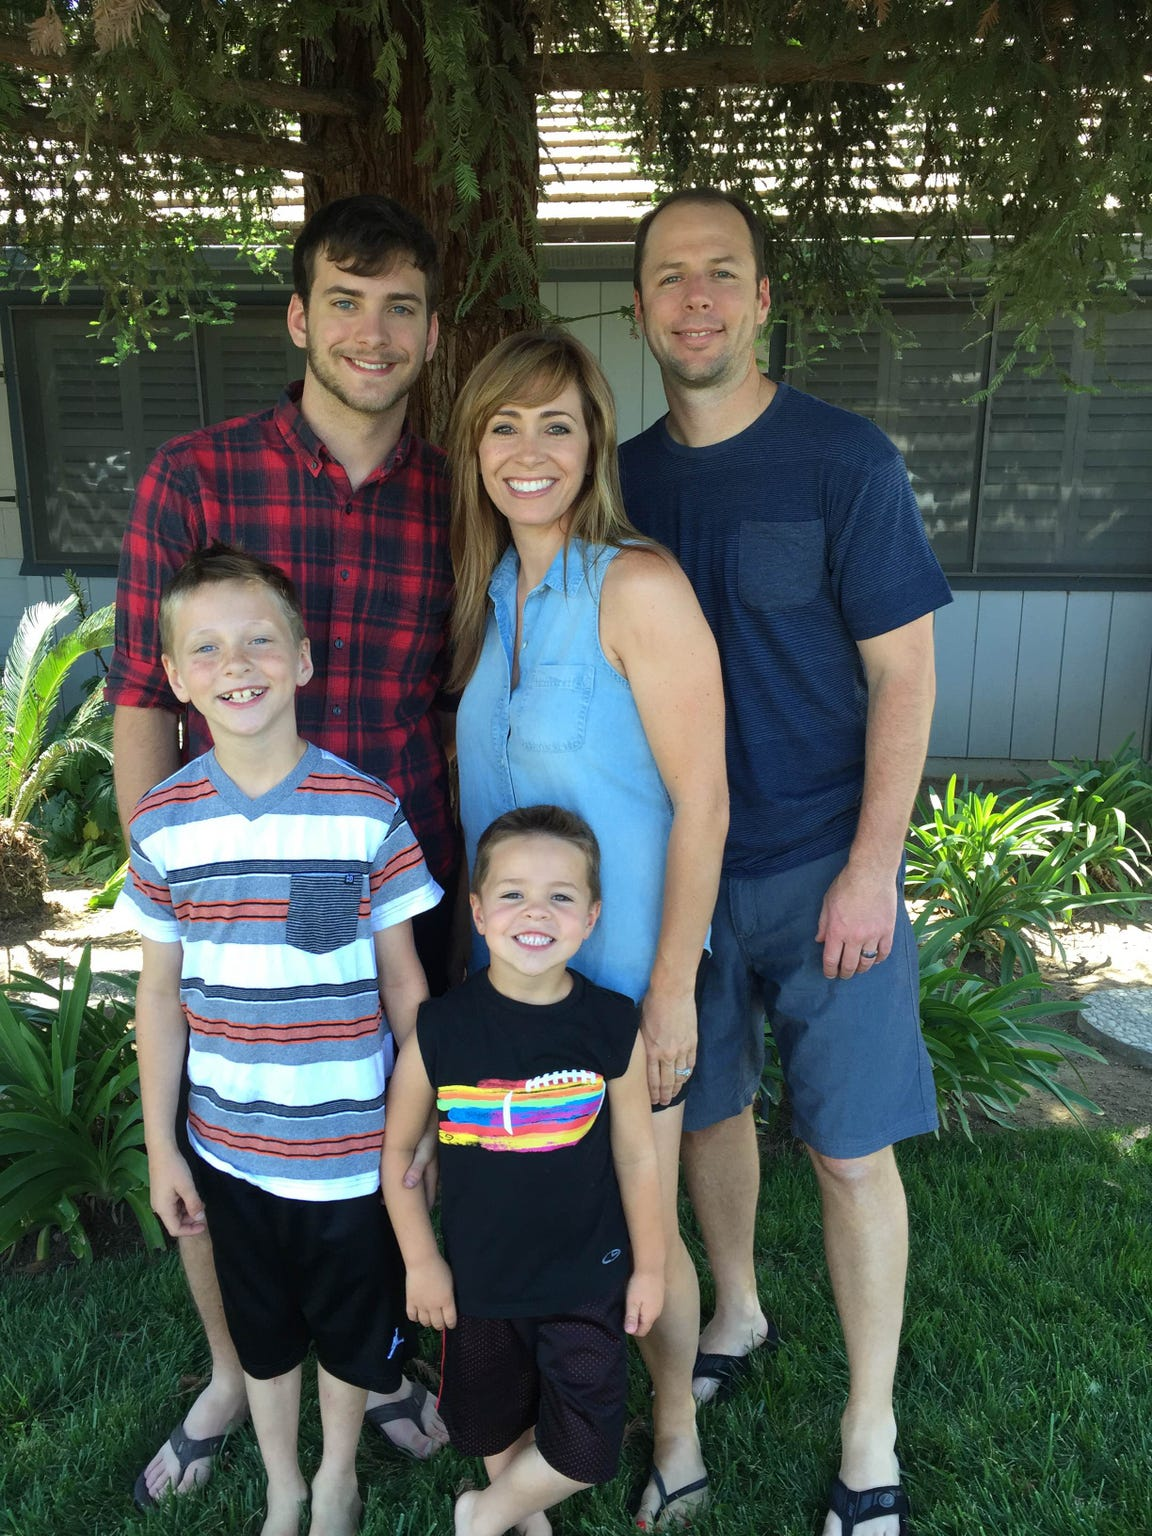 The Jefferson family from Visalia: Nathan (right) and